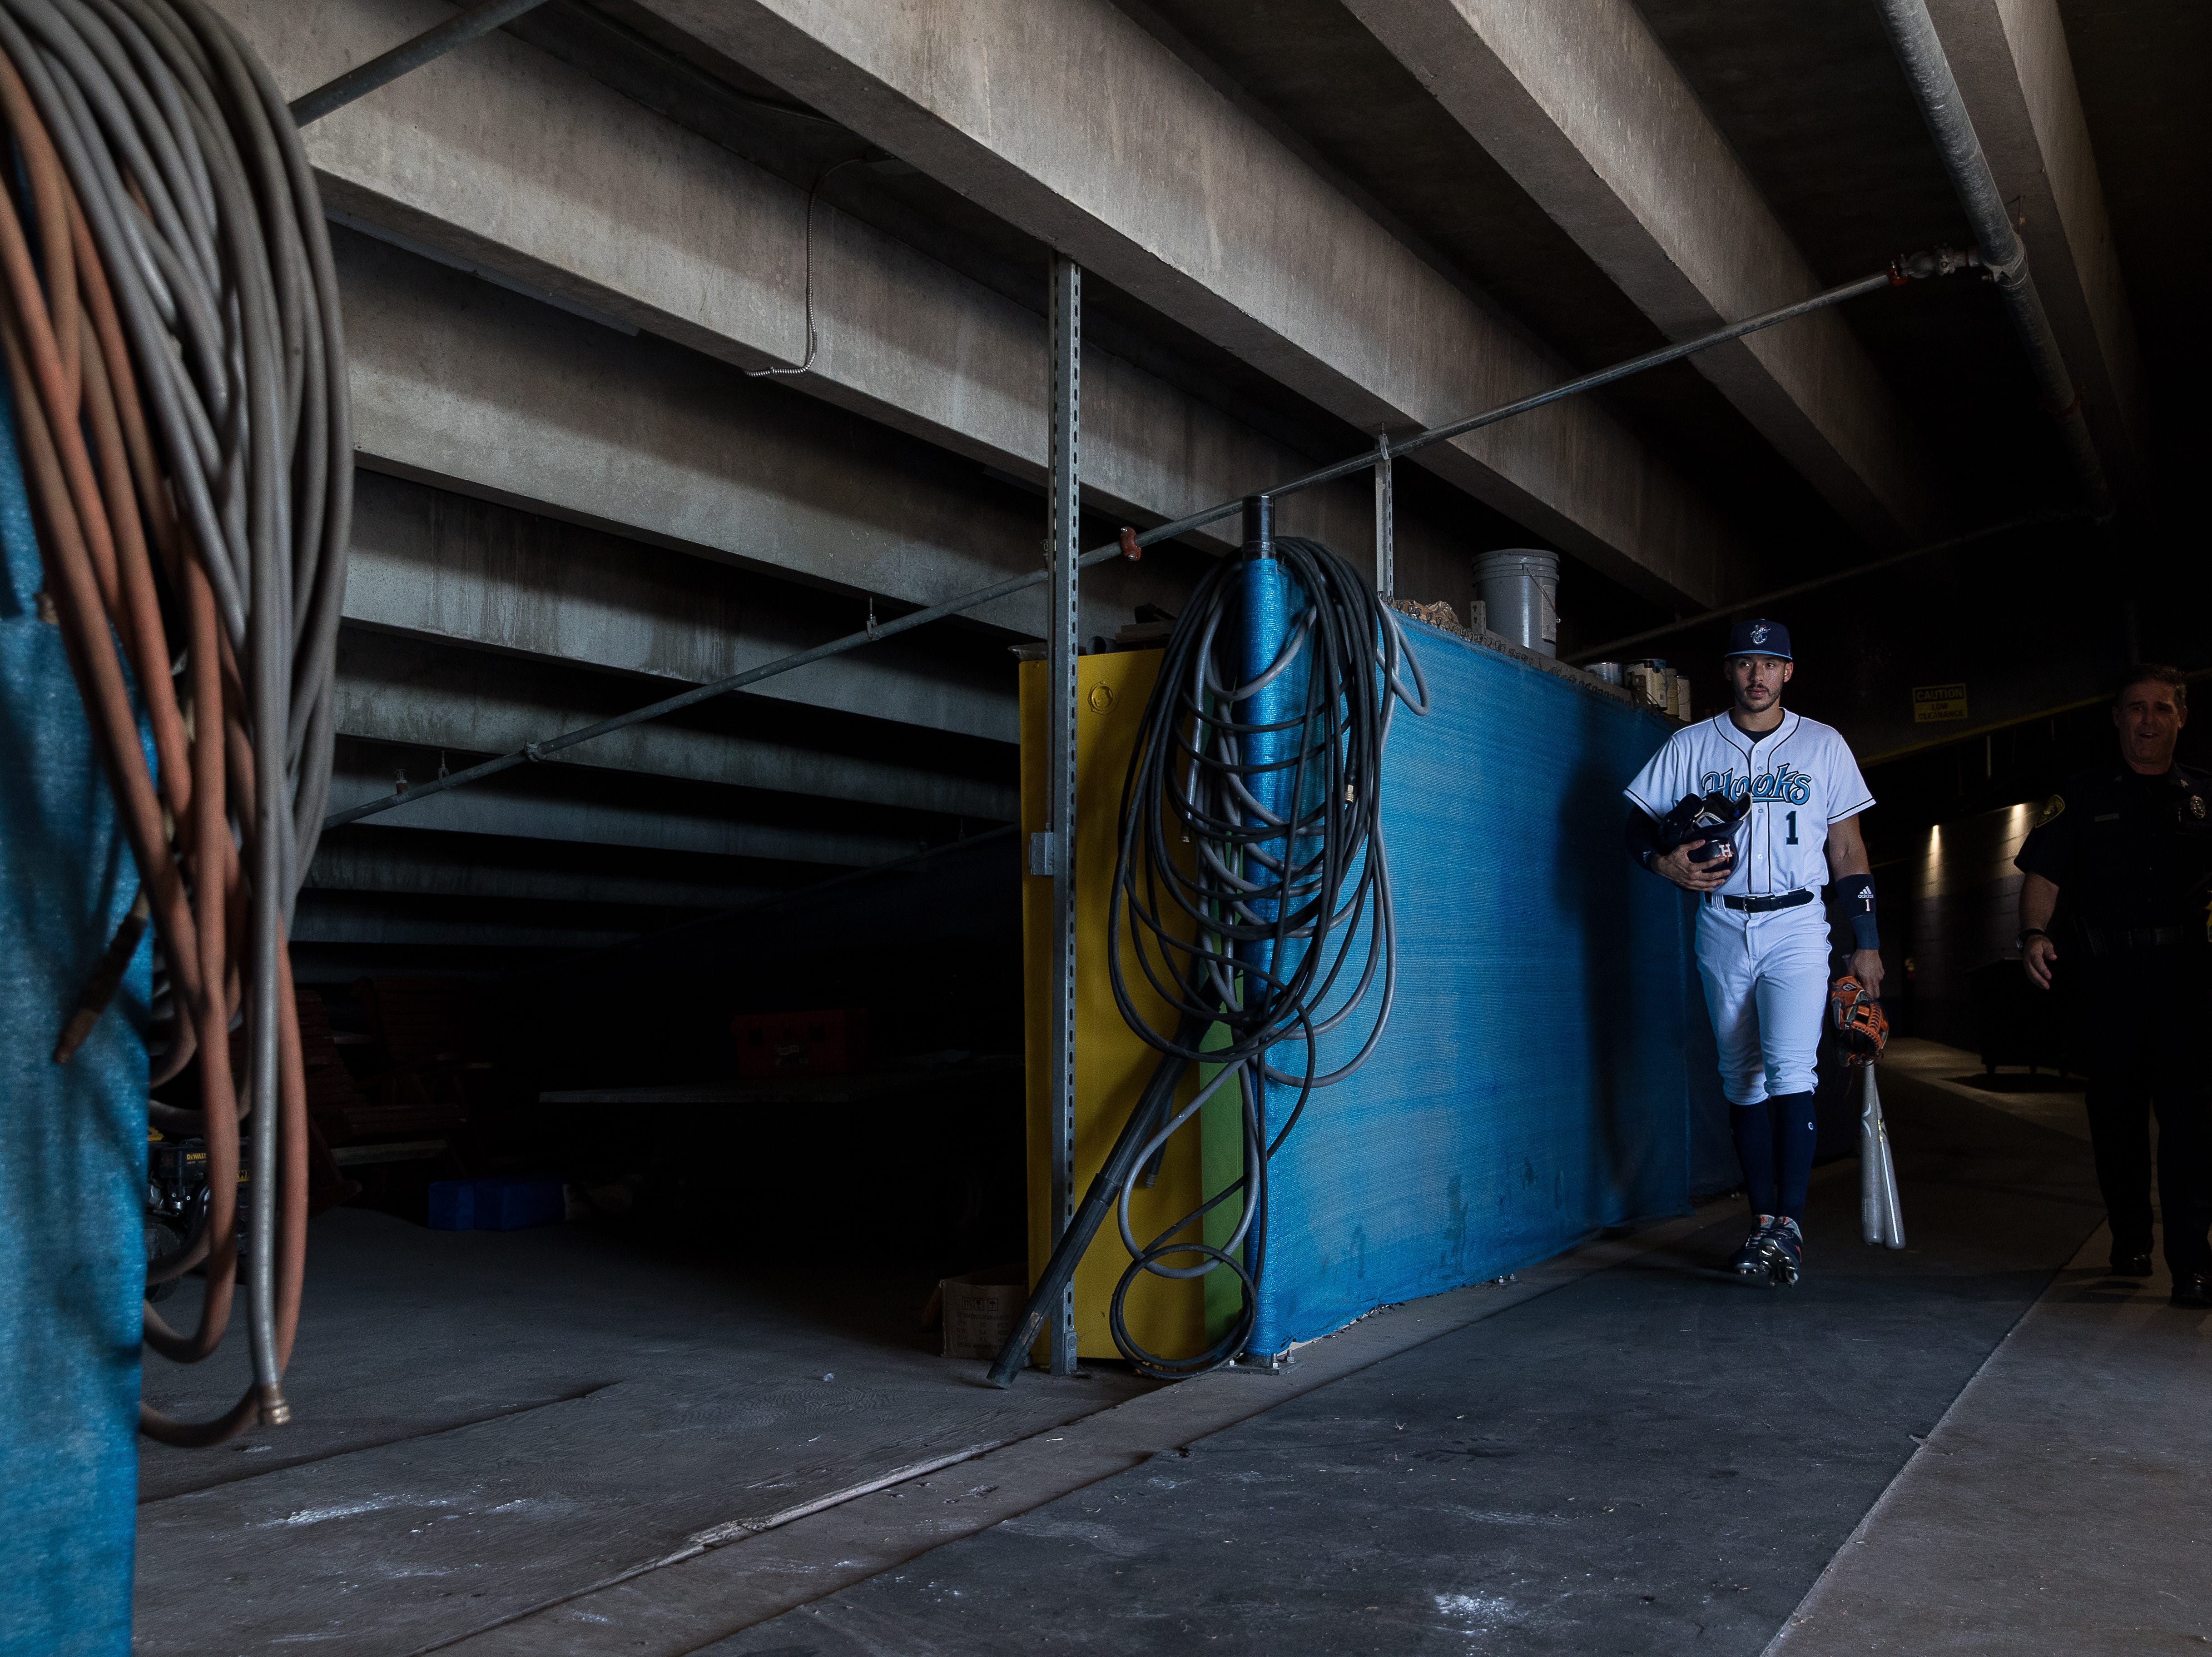 Carlos Correa, from the Houston Astros, walks out of the home team tunnel at Whataburger Field before a Hooks game where he will be playing on a rehab assignment on Tuesday, Aug. 7, 2018.